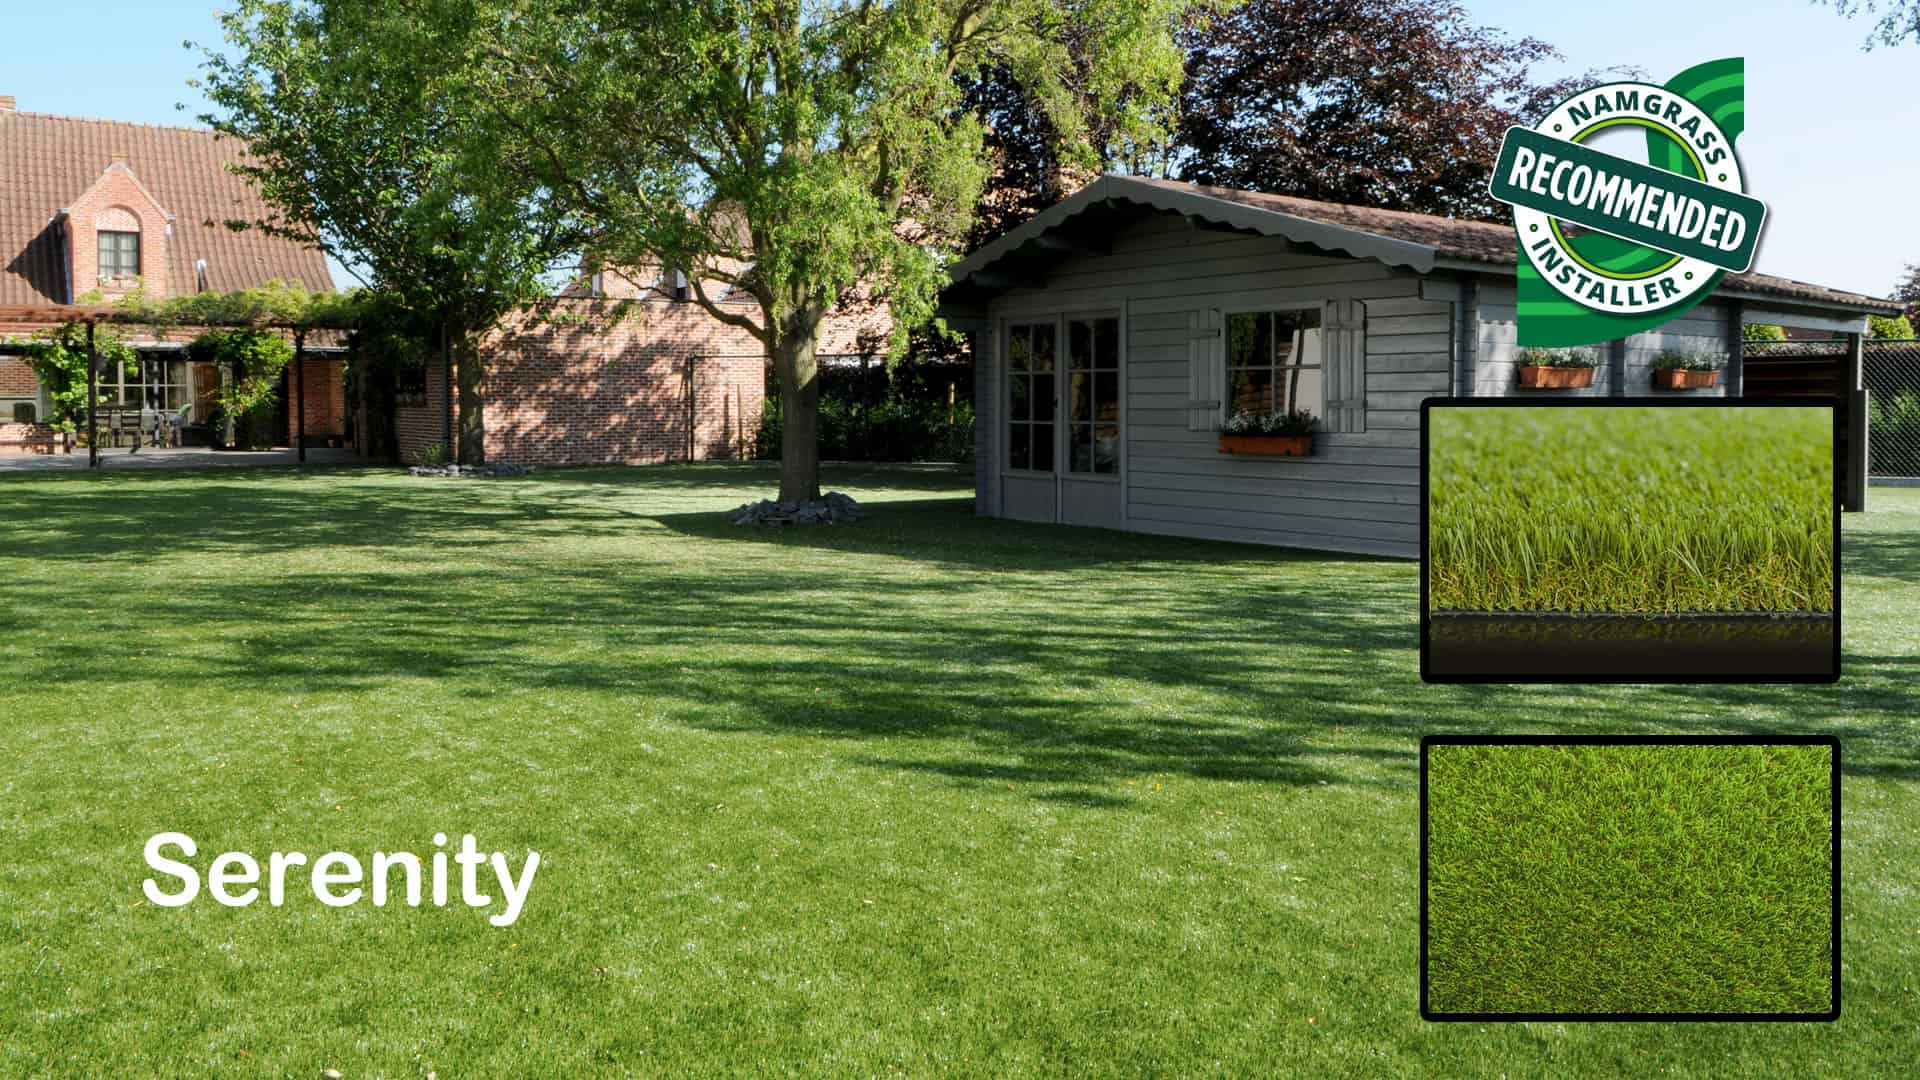 Serenity Namgrass artificial grass